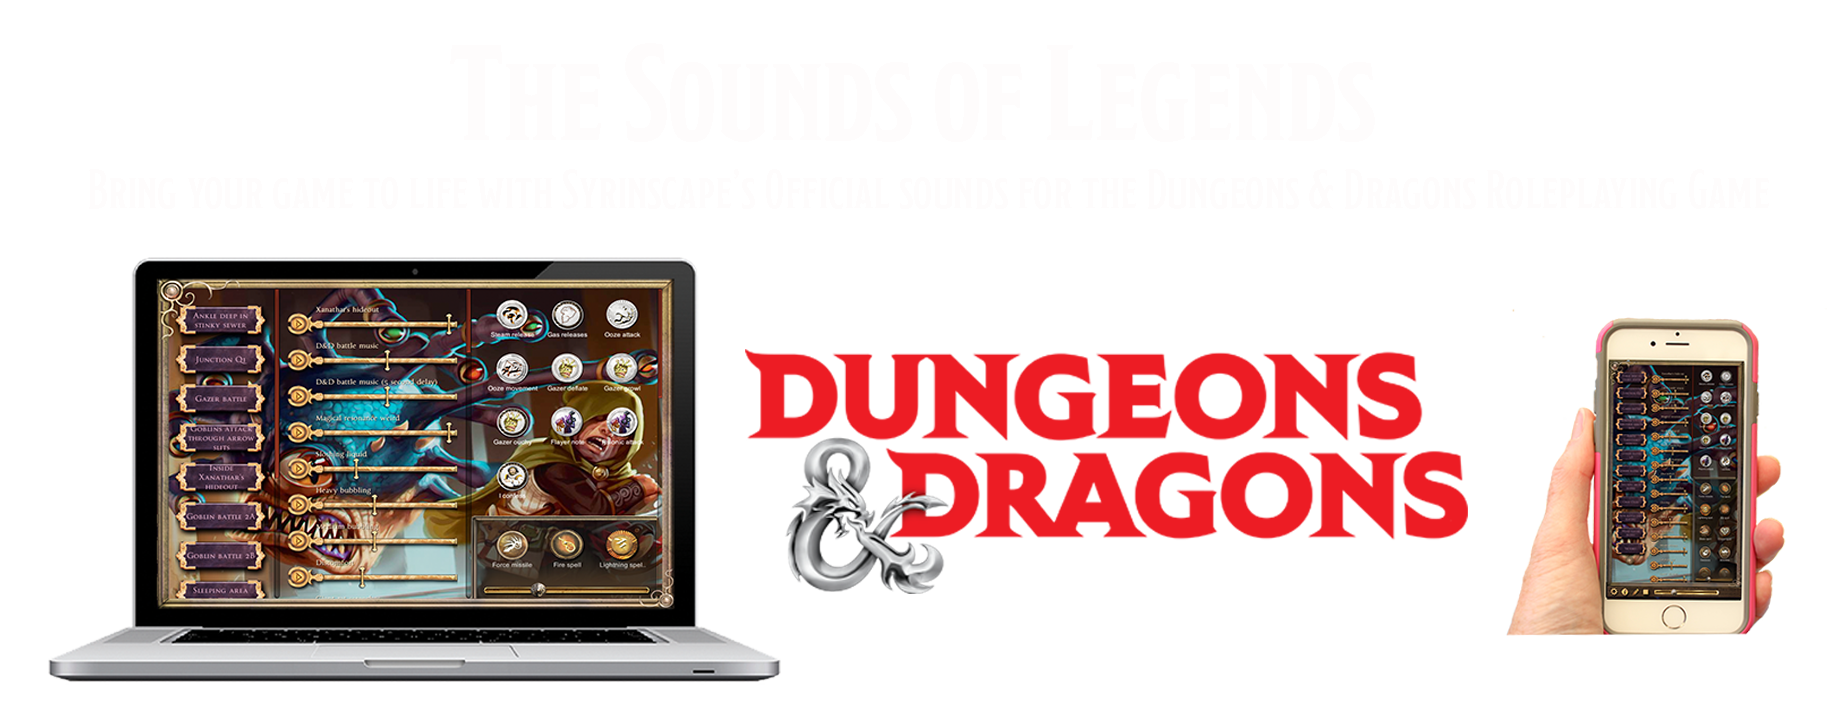 Bring your Dungeons and Dragons games to life with the official Dnd sounds